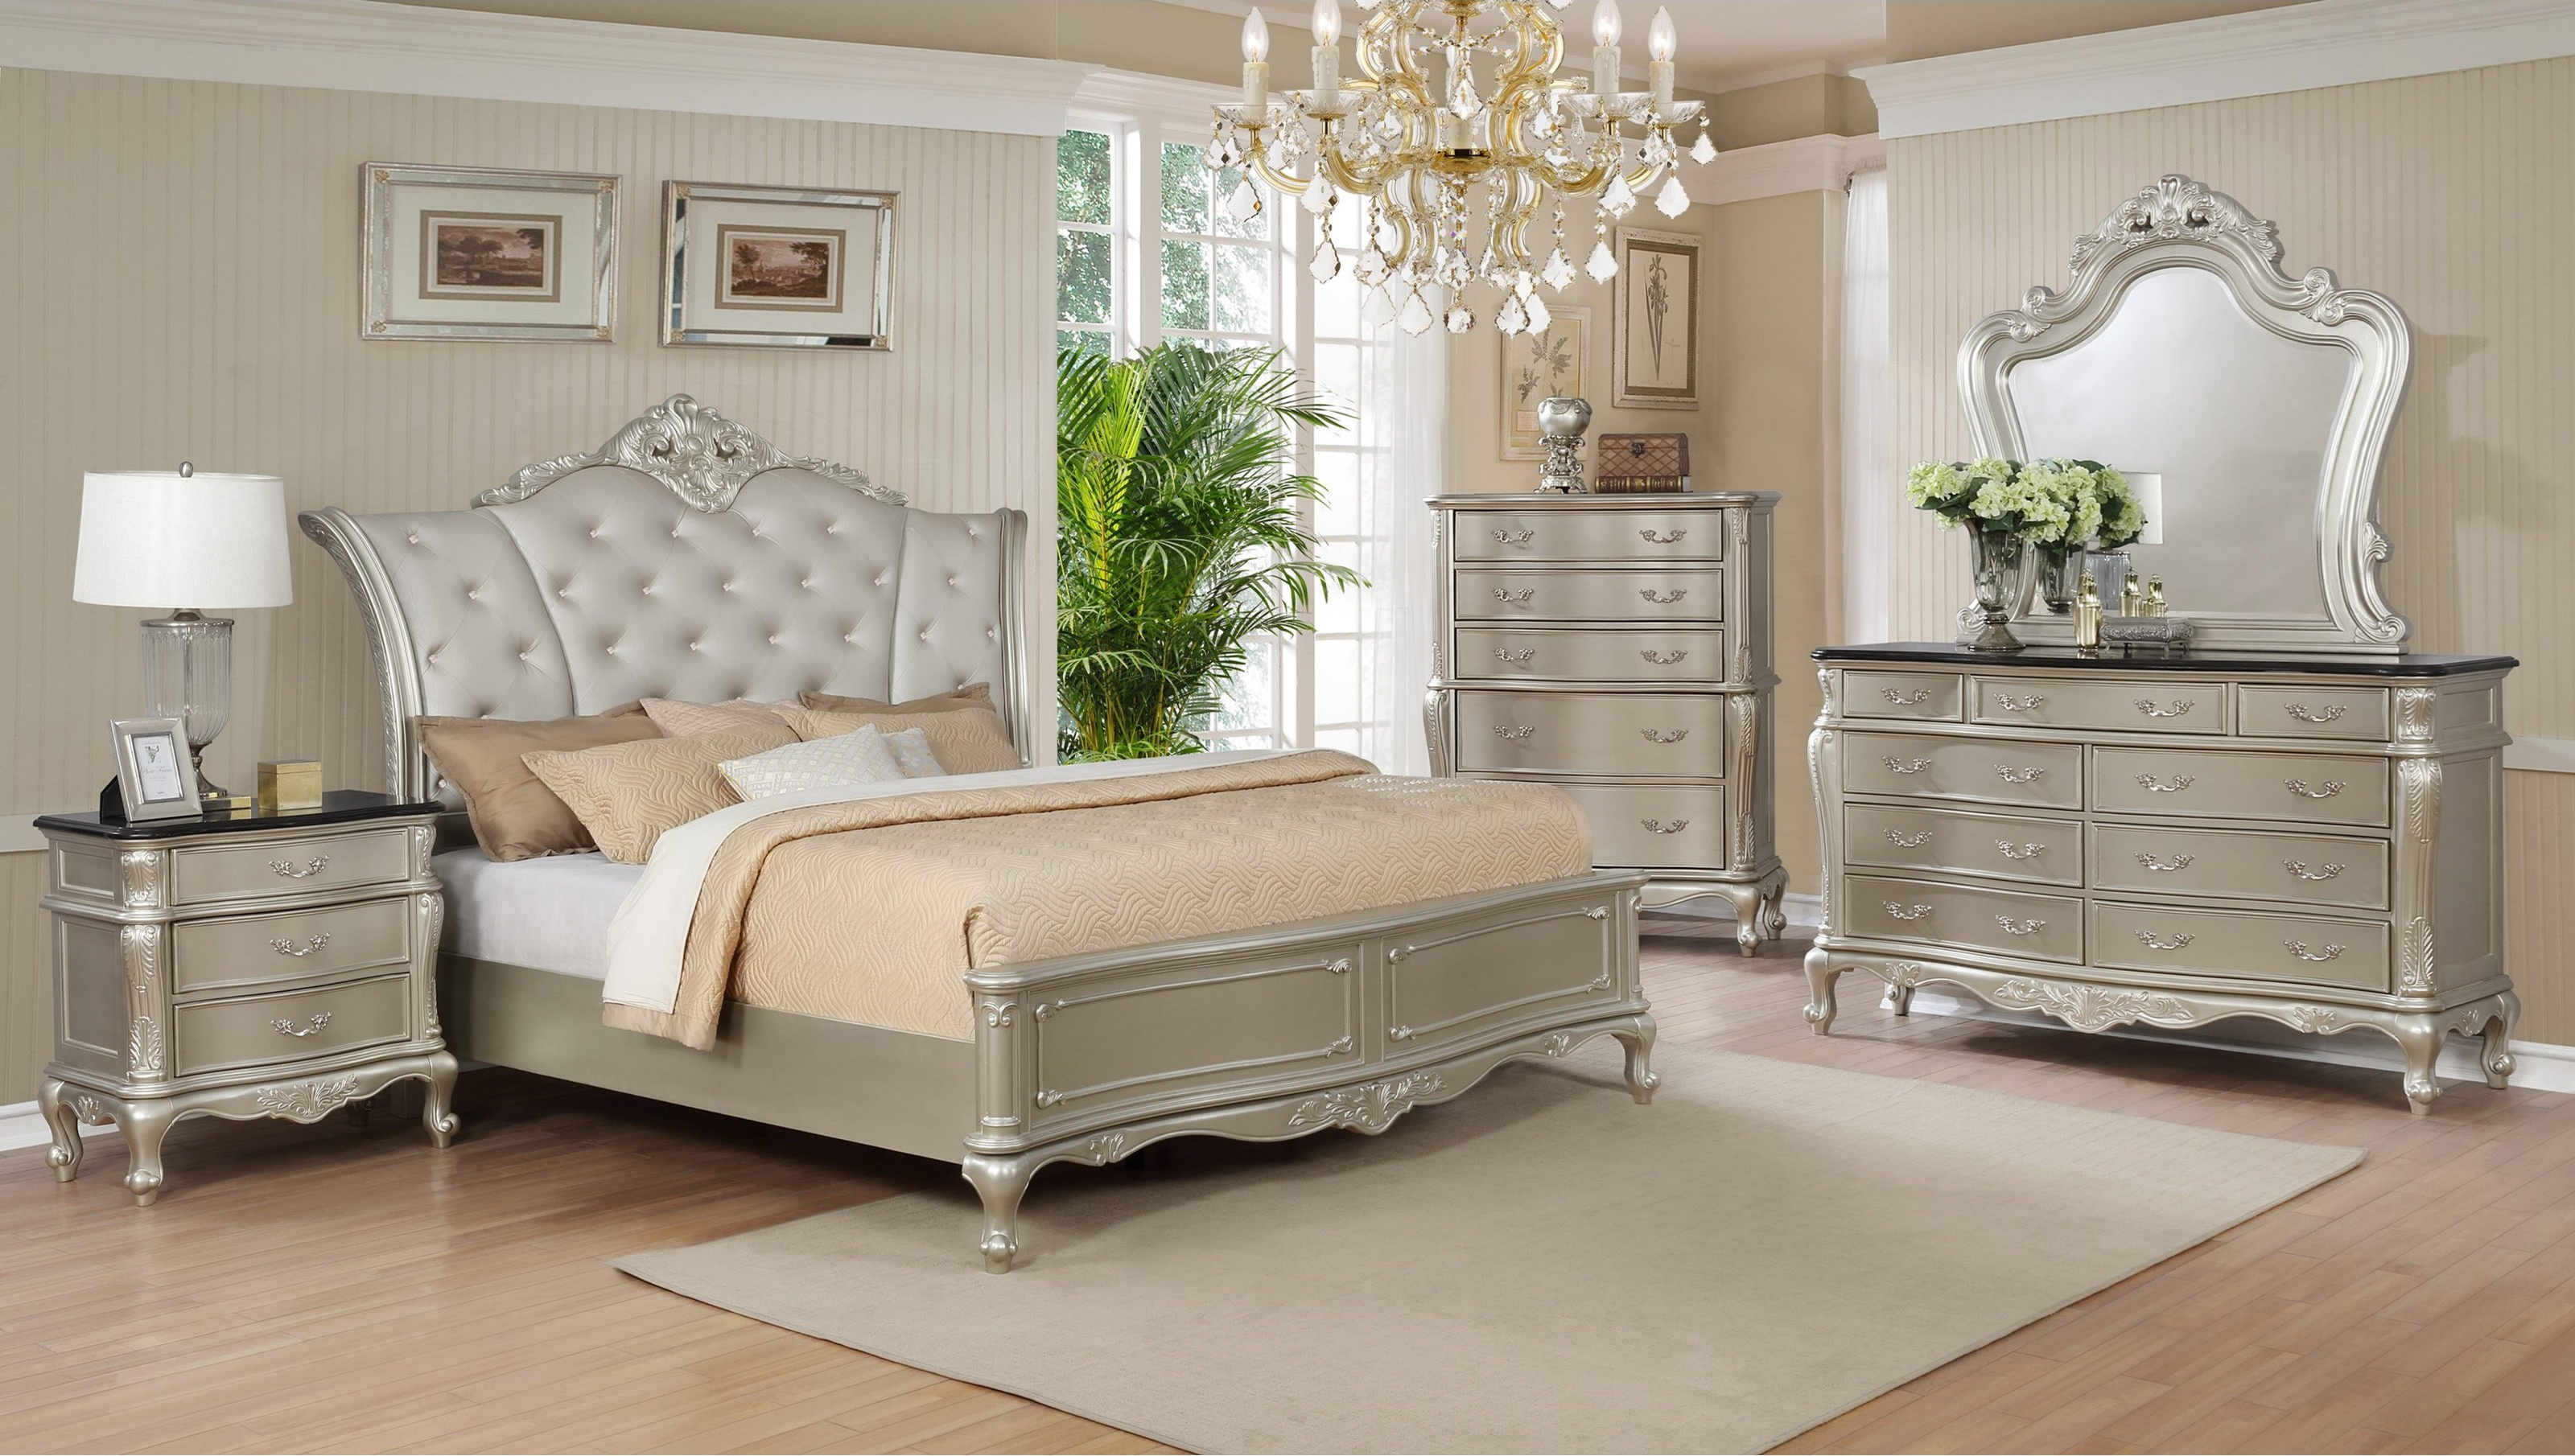 Angelina Bedroom Set B1020